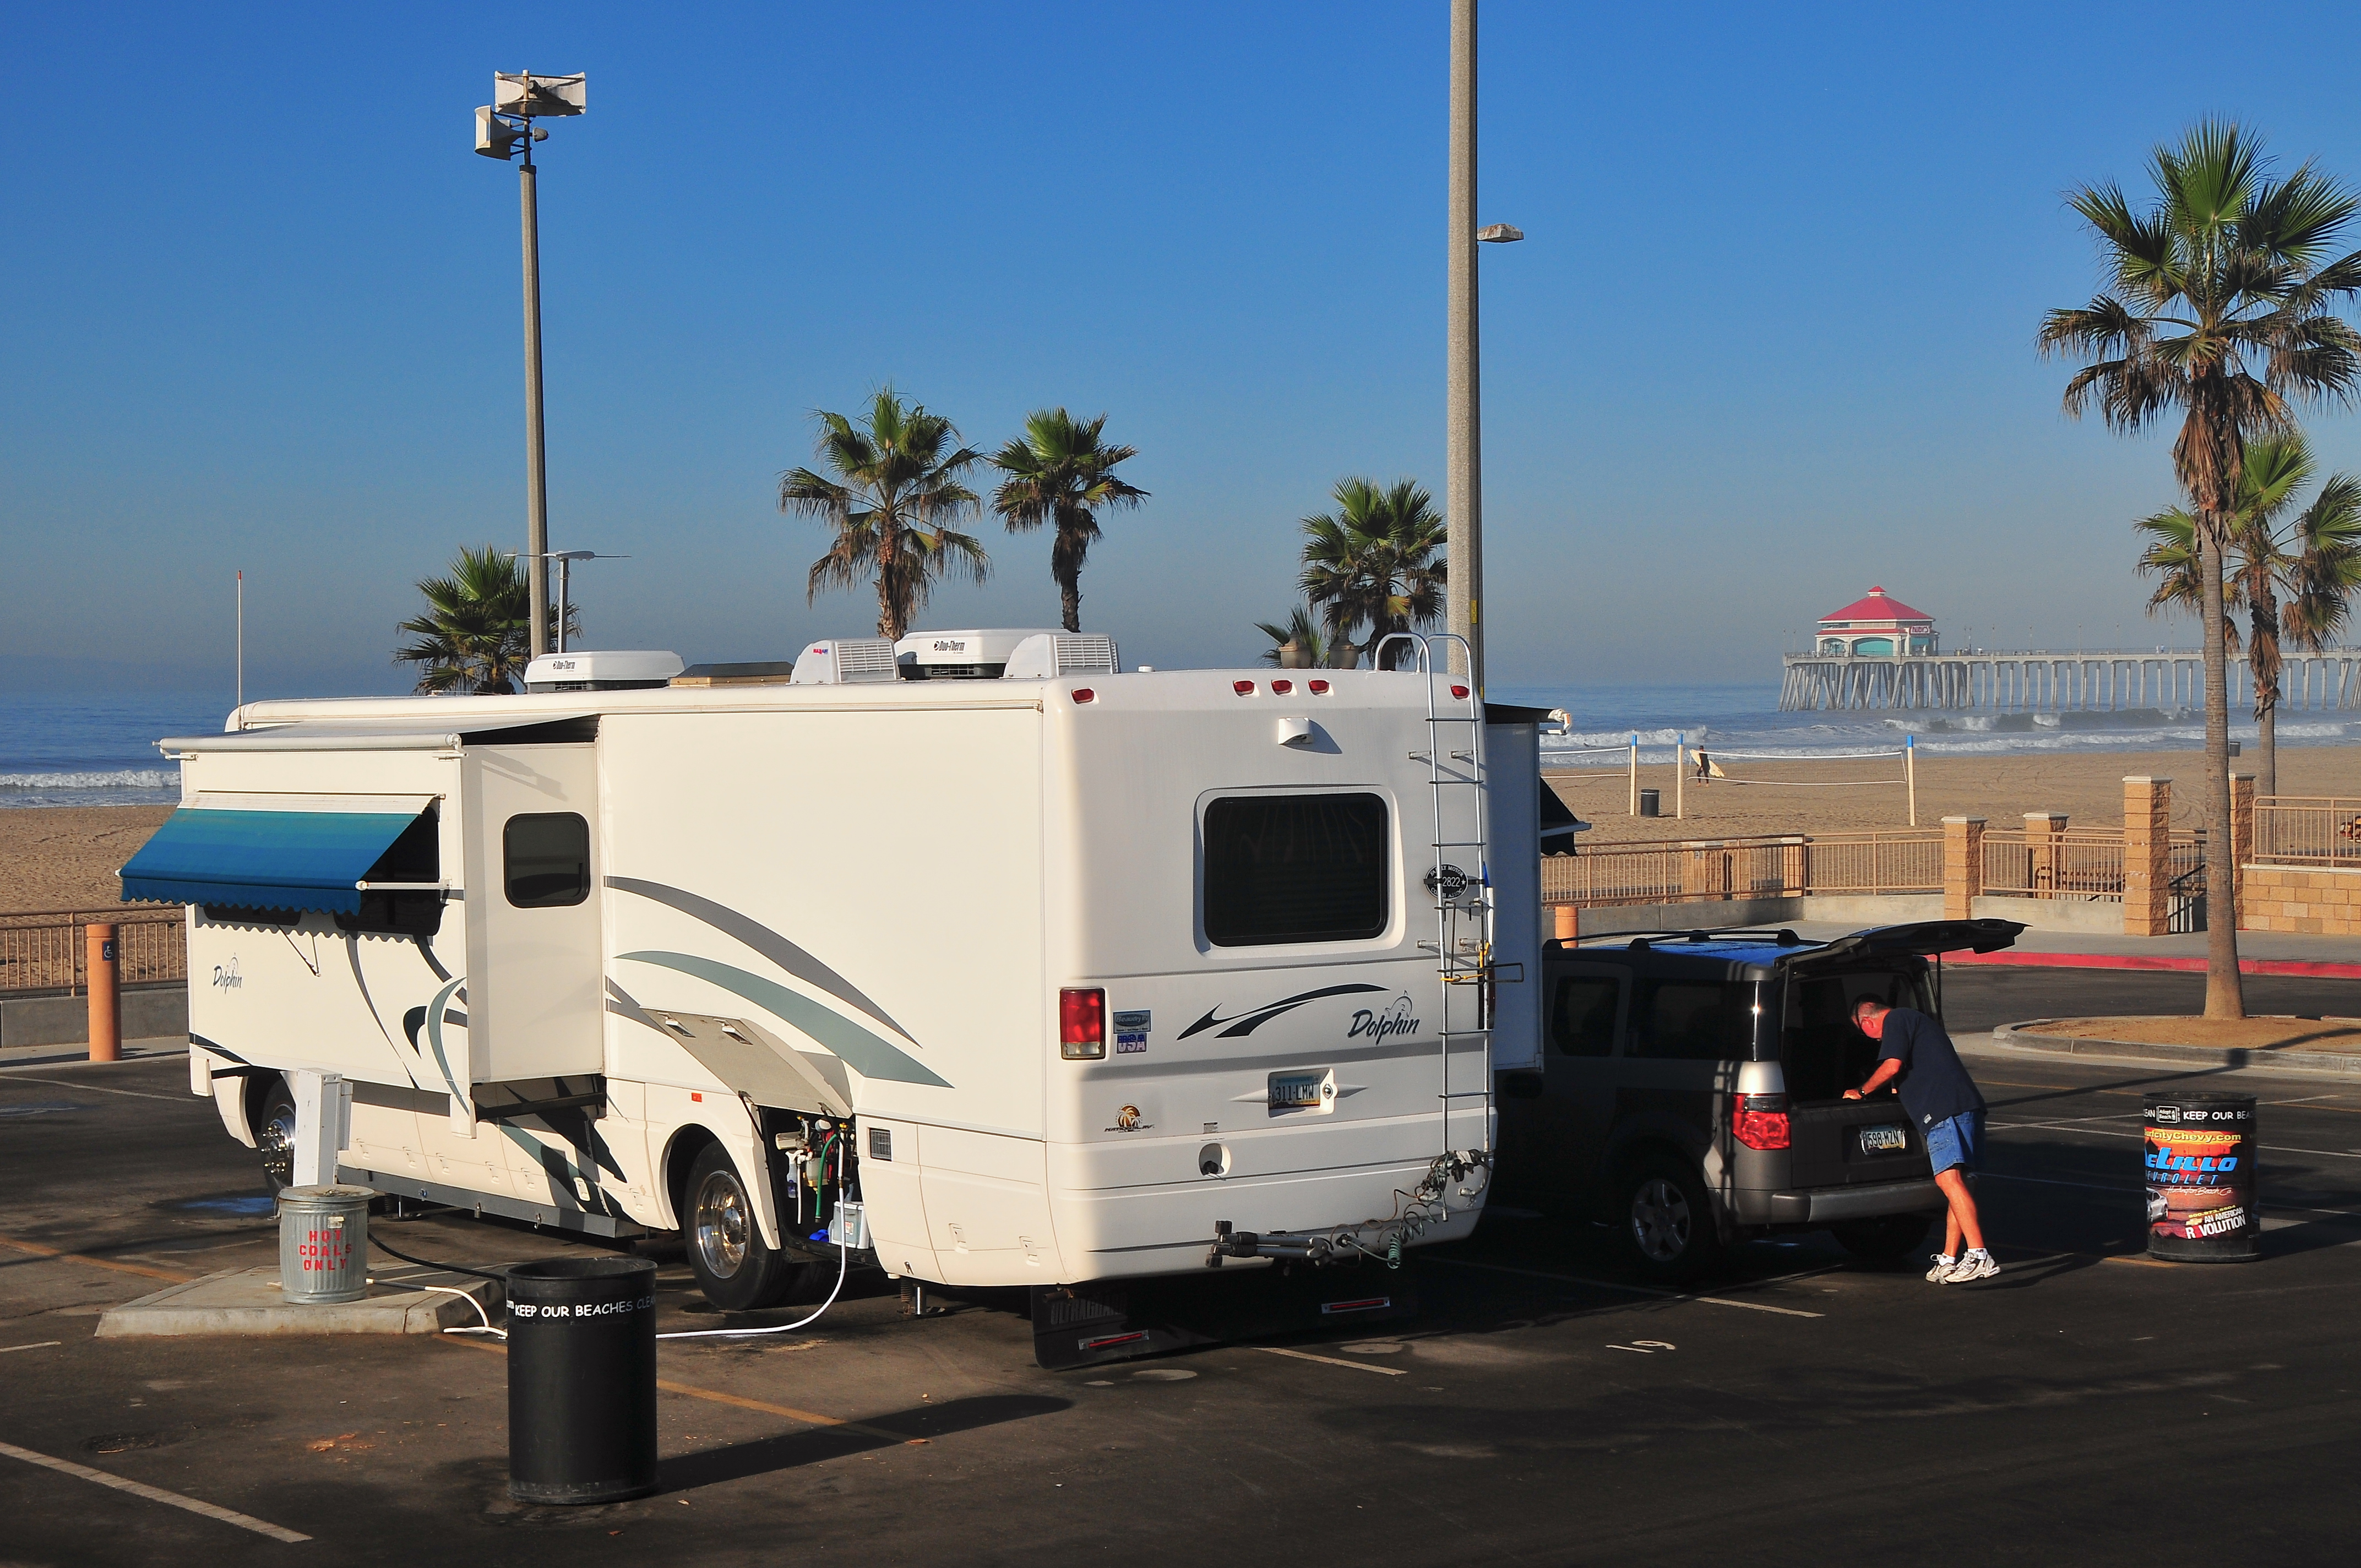 Doheny state beach rv hookups